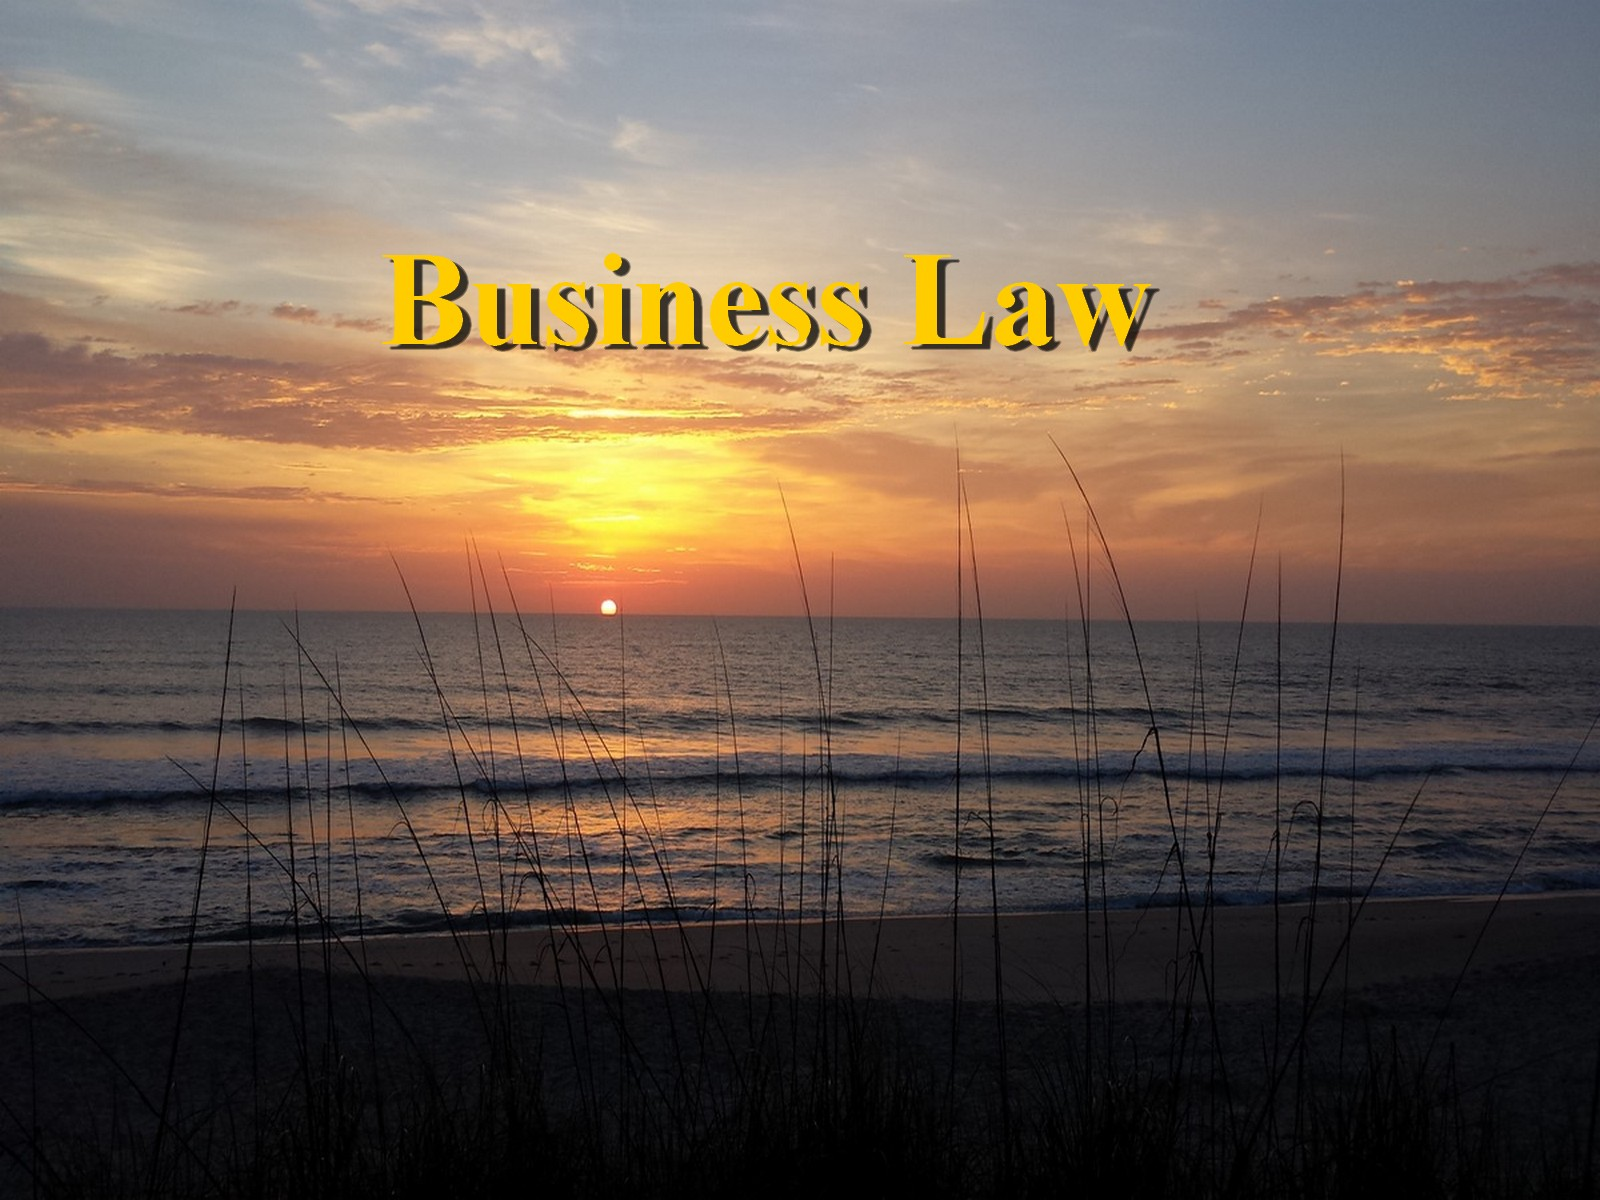 Business Law Attorney │ Melbourne, Palm Bay, Satellite Beach